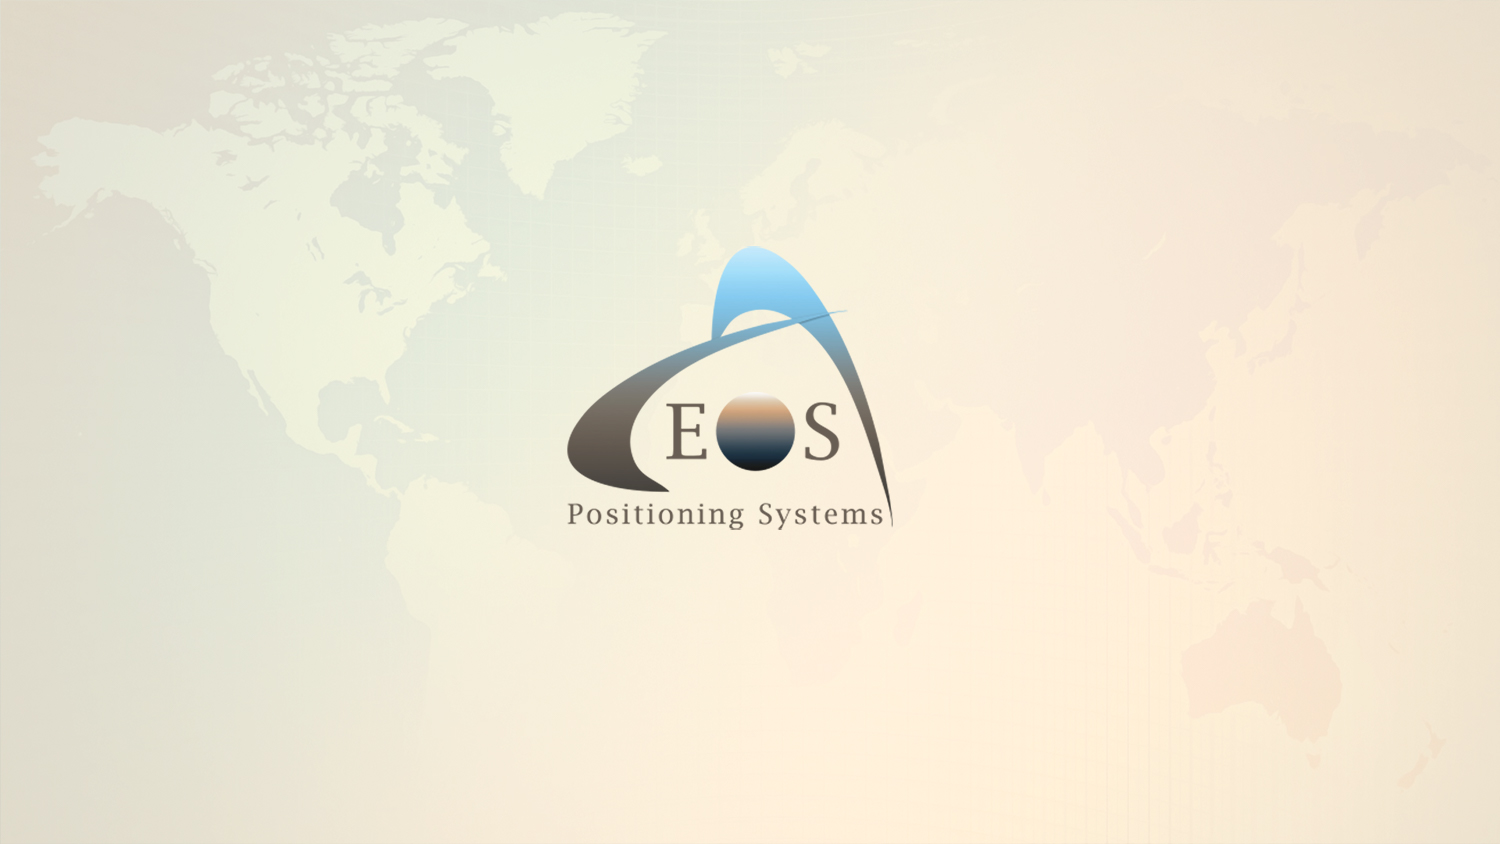 About Eos Positioning Systems GPS GIS GNSS Receivers